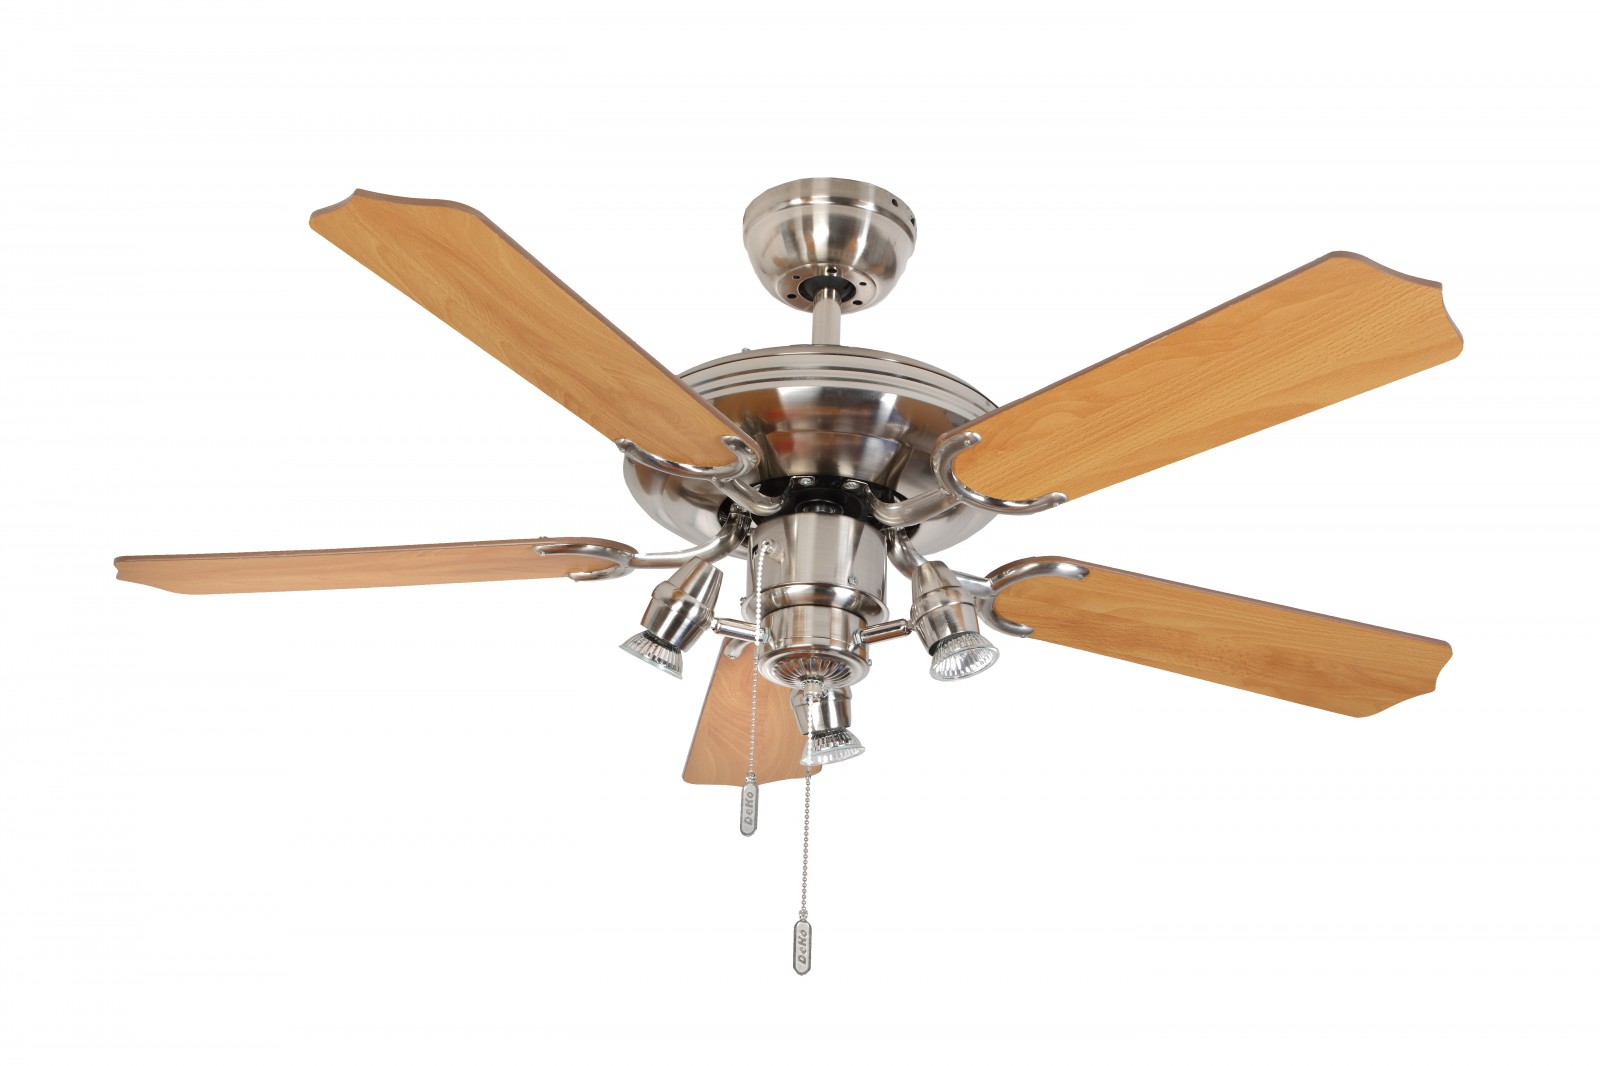 Ceiling Fan Steel Star Slimline Bc 803 S 103 Cm 41 Quot With